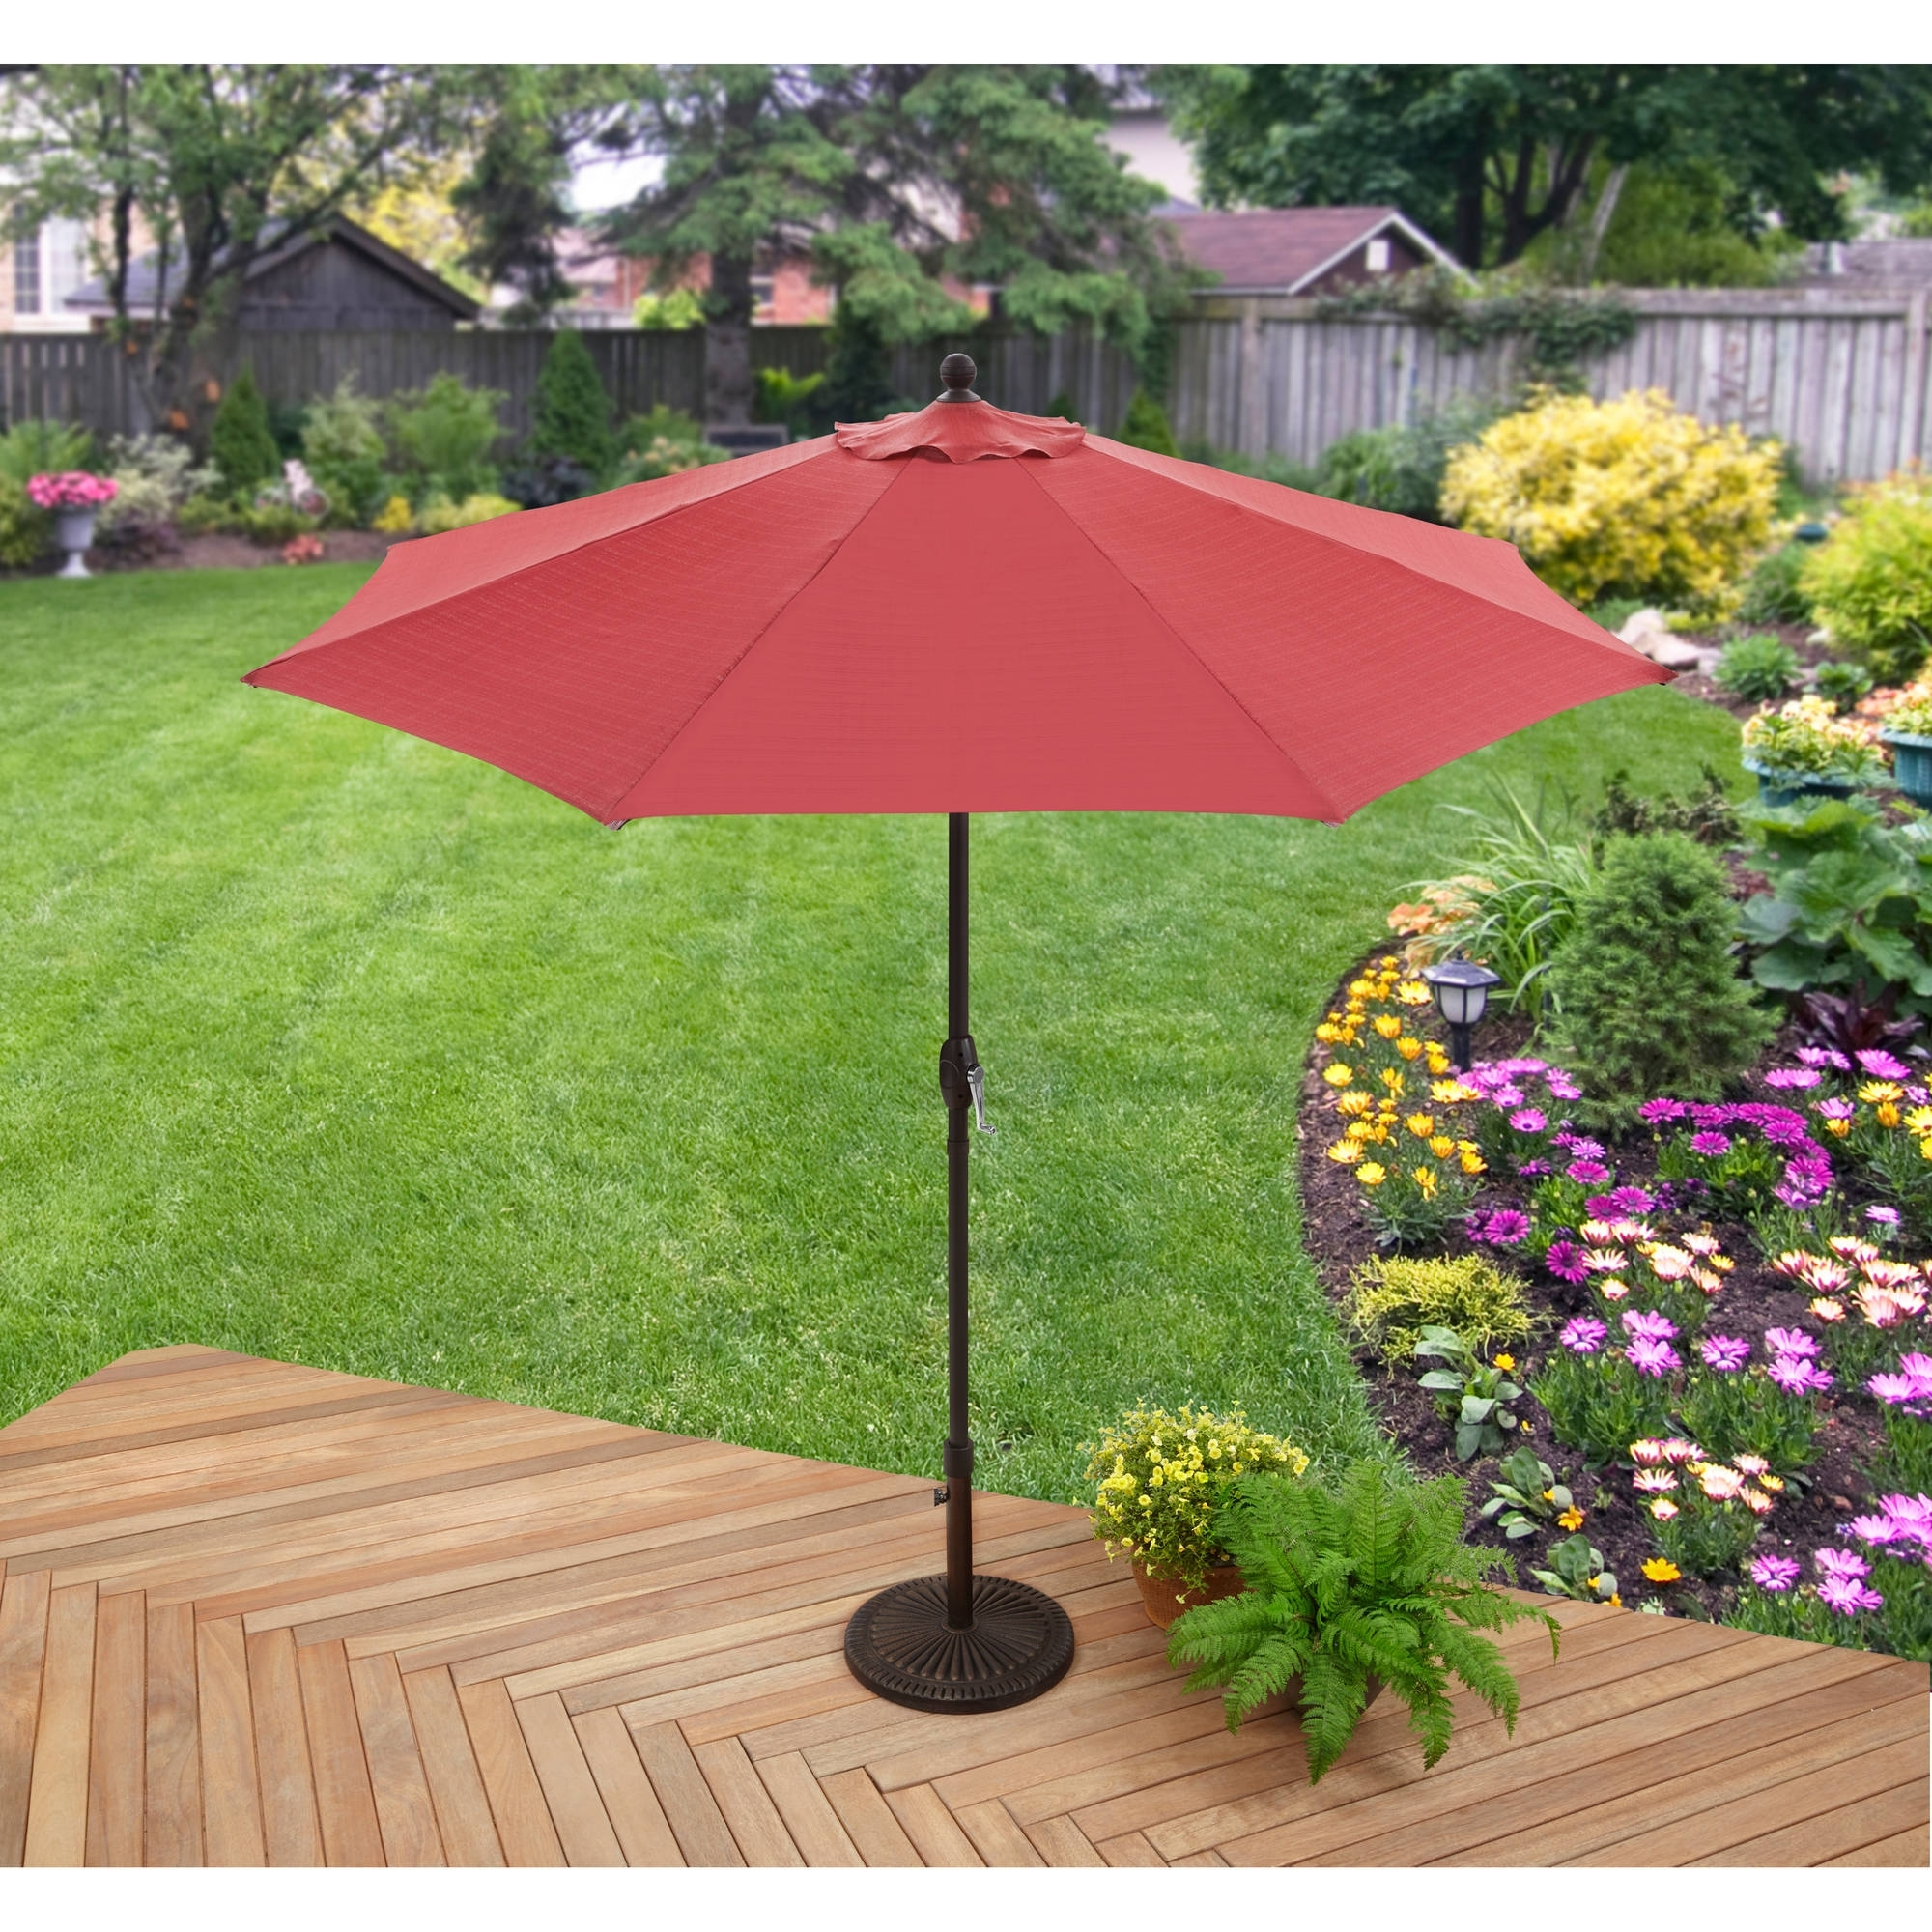 Most Current Walmart Patio Umbrellas For Better Homes And Gardens 9' Market Umbrella, Red – Walmart (View 5 of 20)